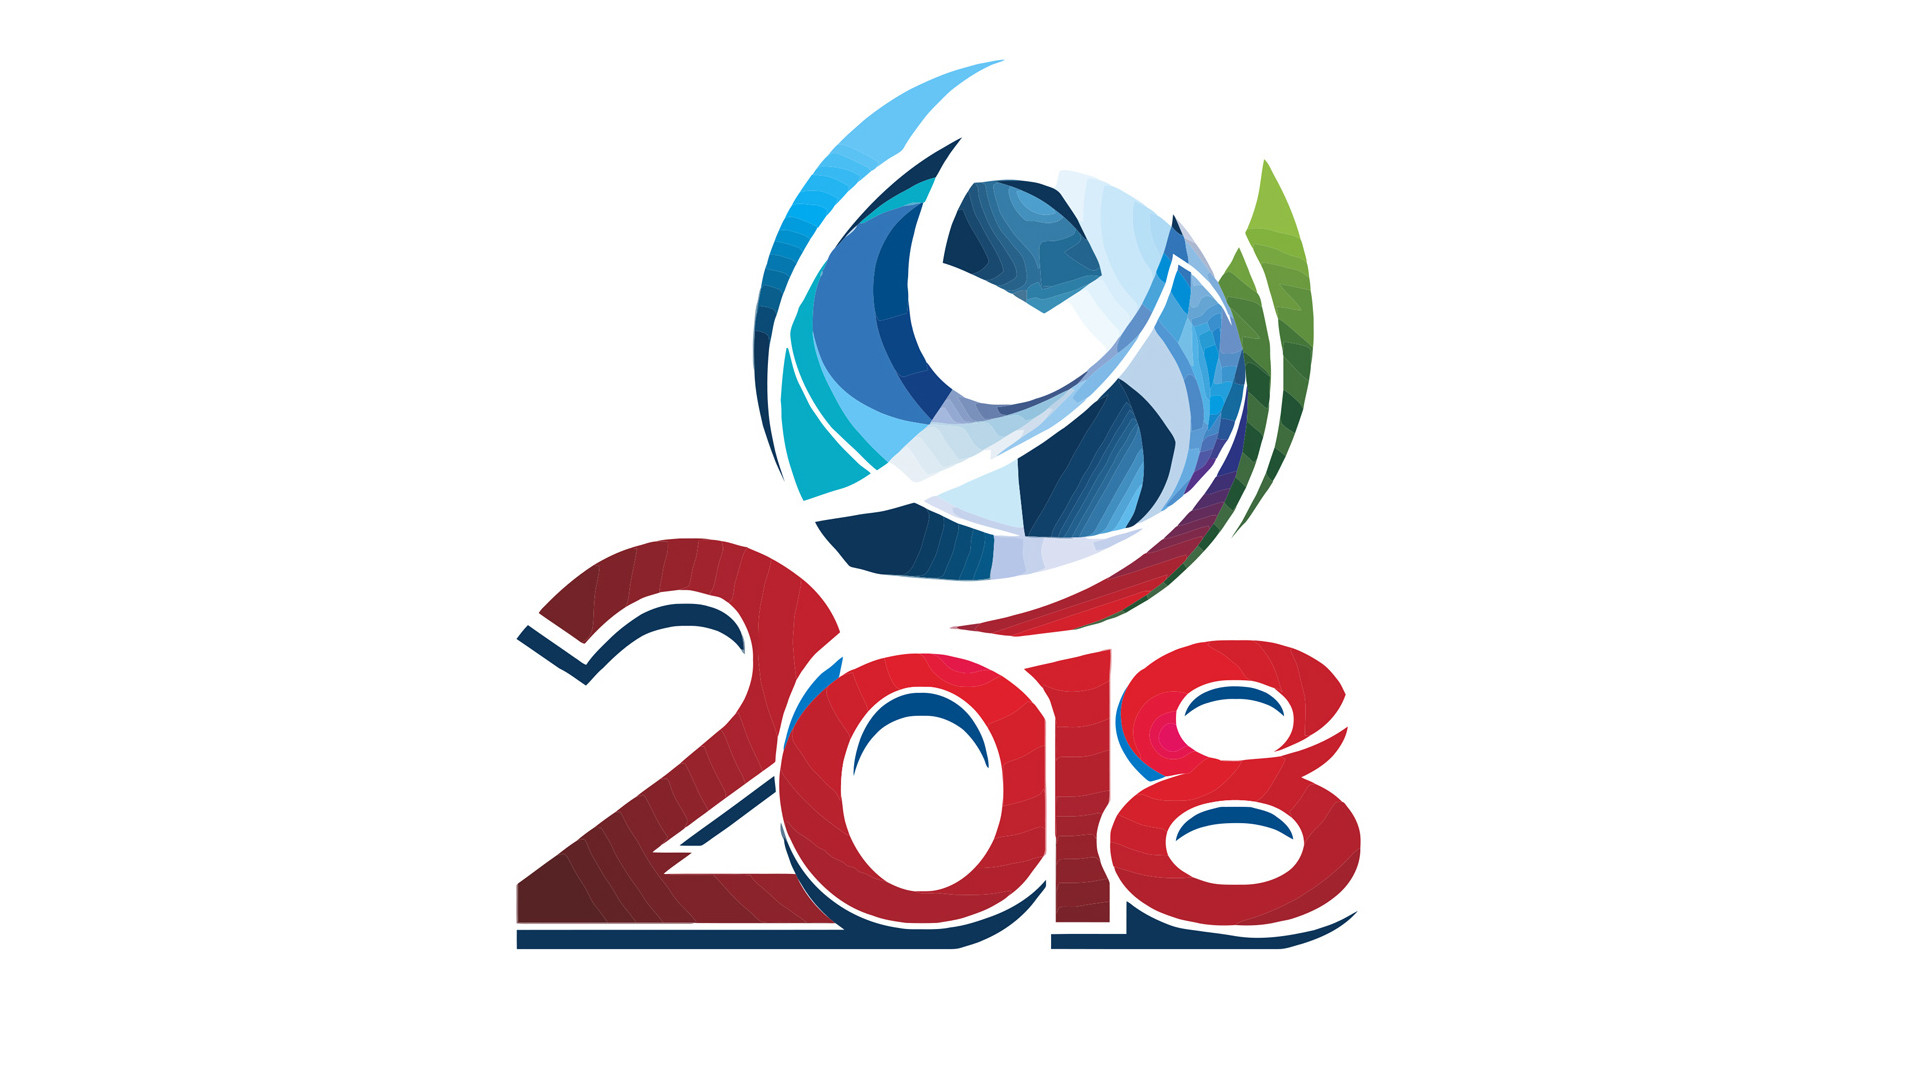 Usa Soccer Logo 2018 Wallpaper 70 Pictures